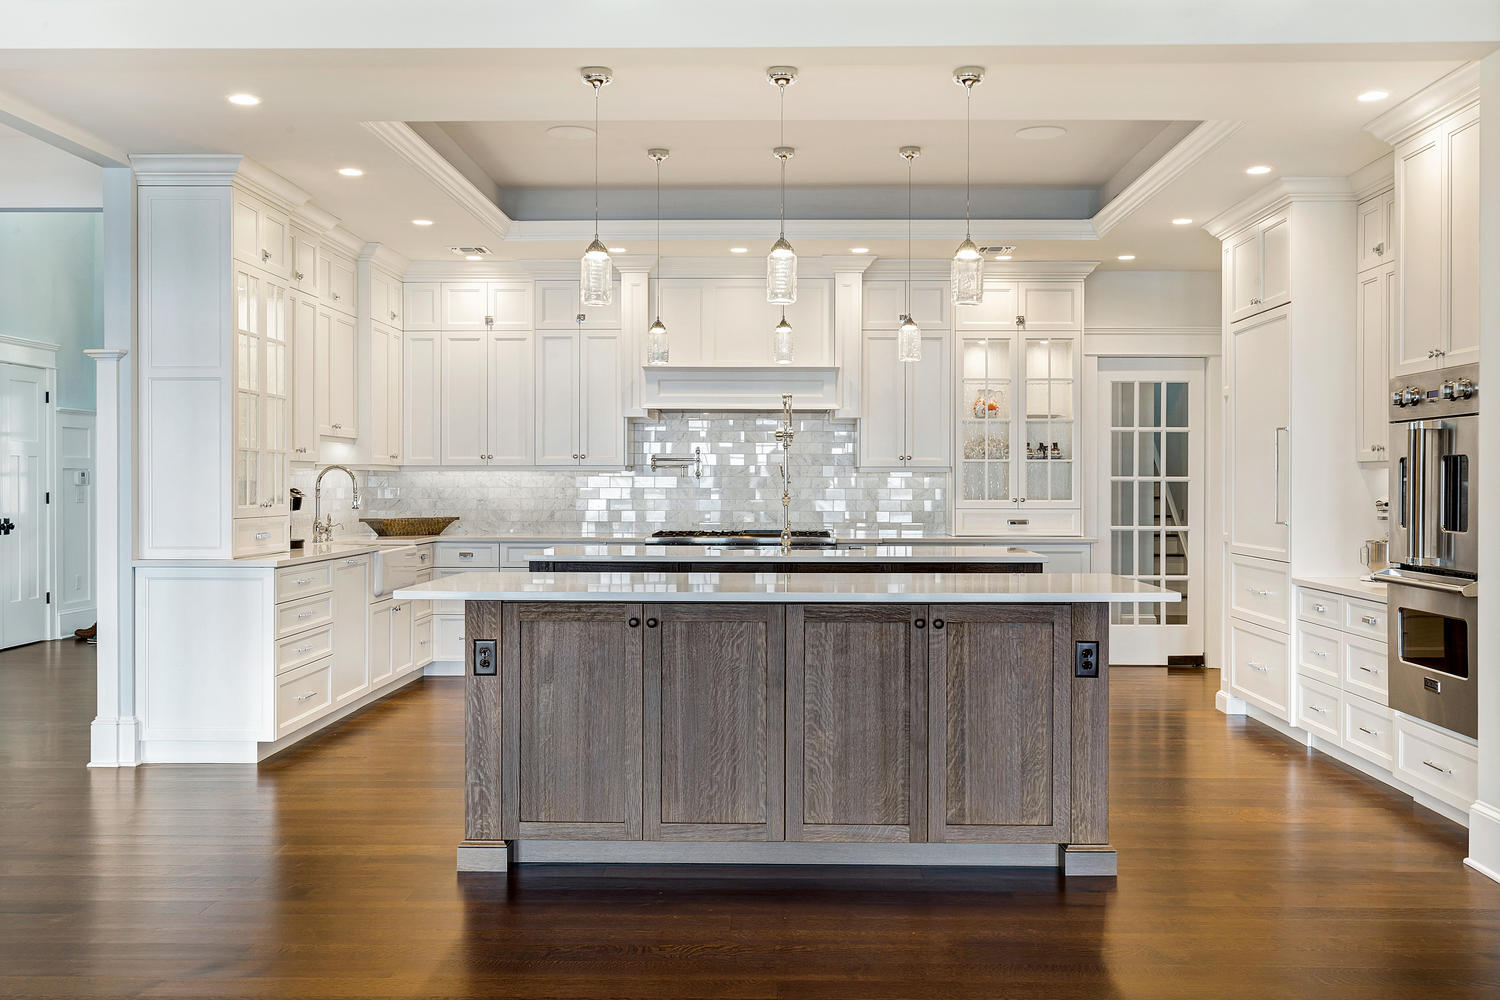 Kitchens With Islands Kitchen Islands Peninsulas Design Line Kitchens In Sea Girt Nj